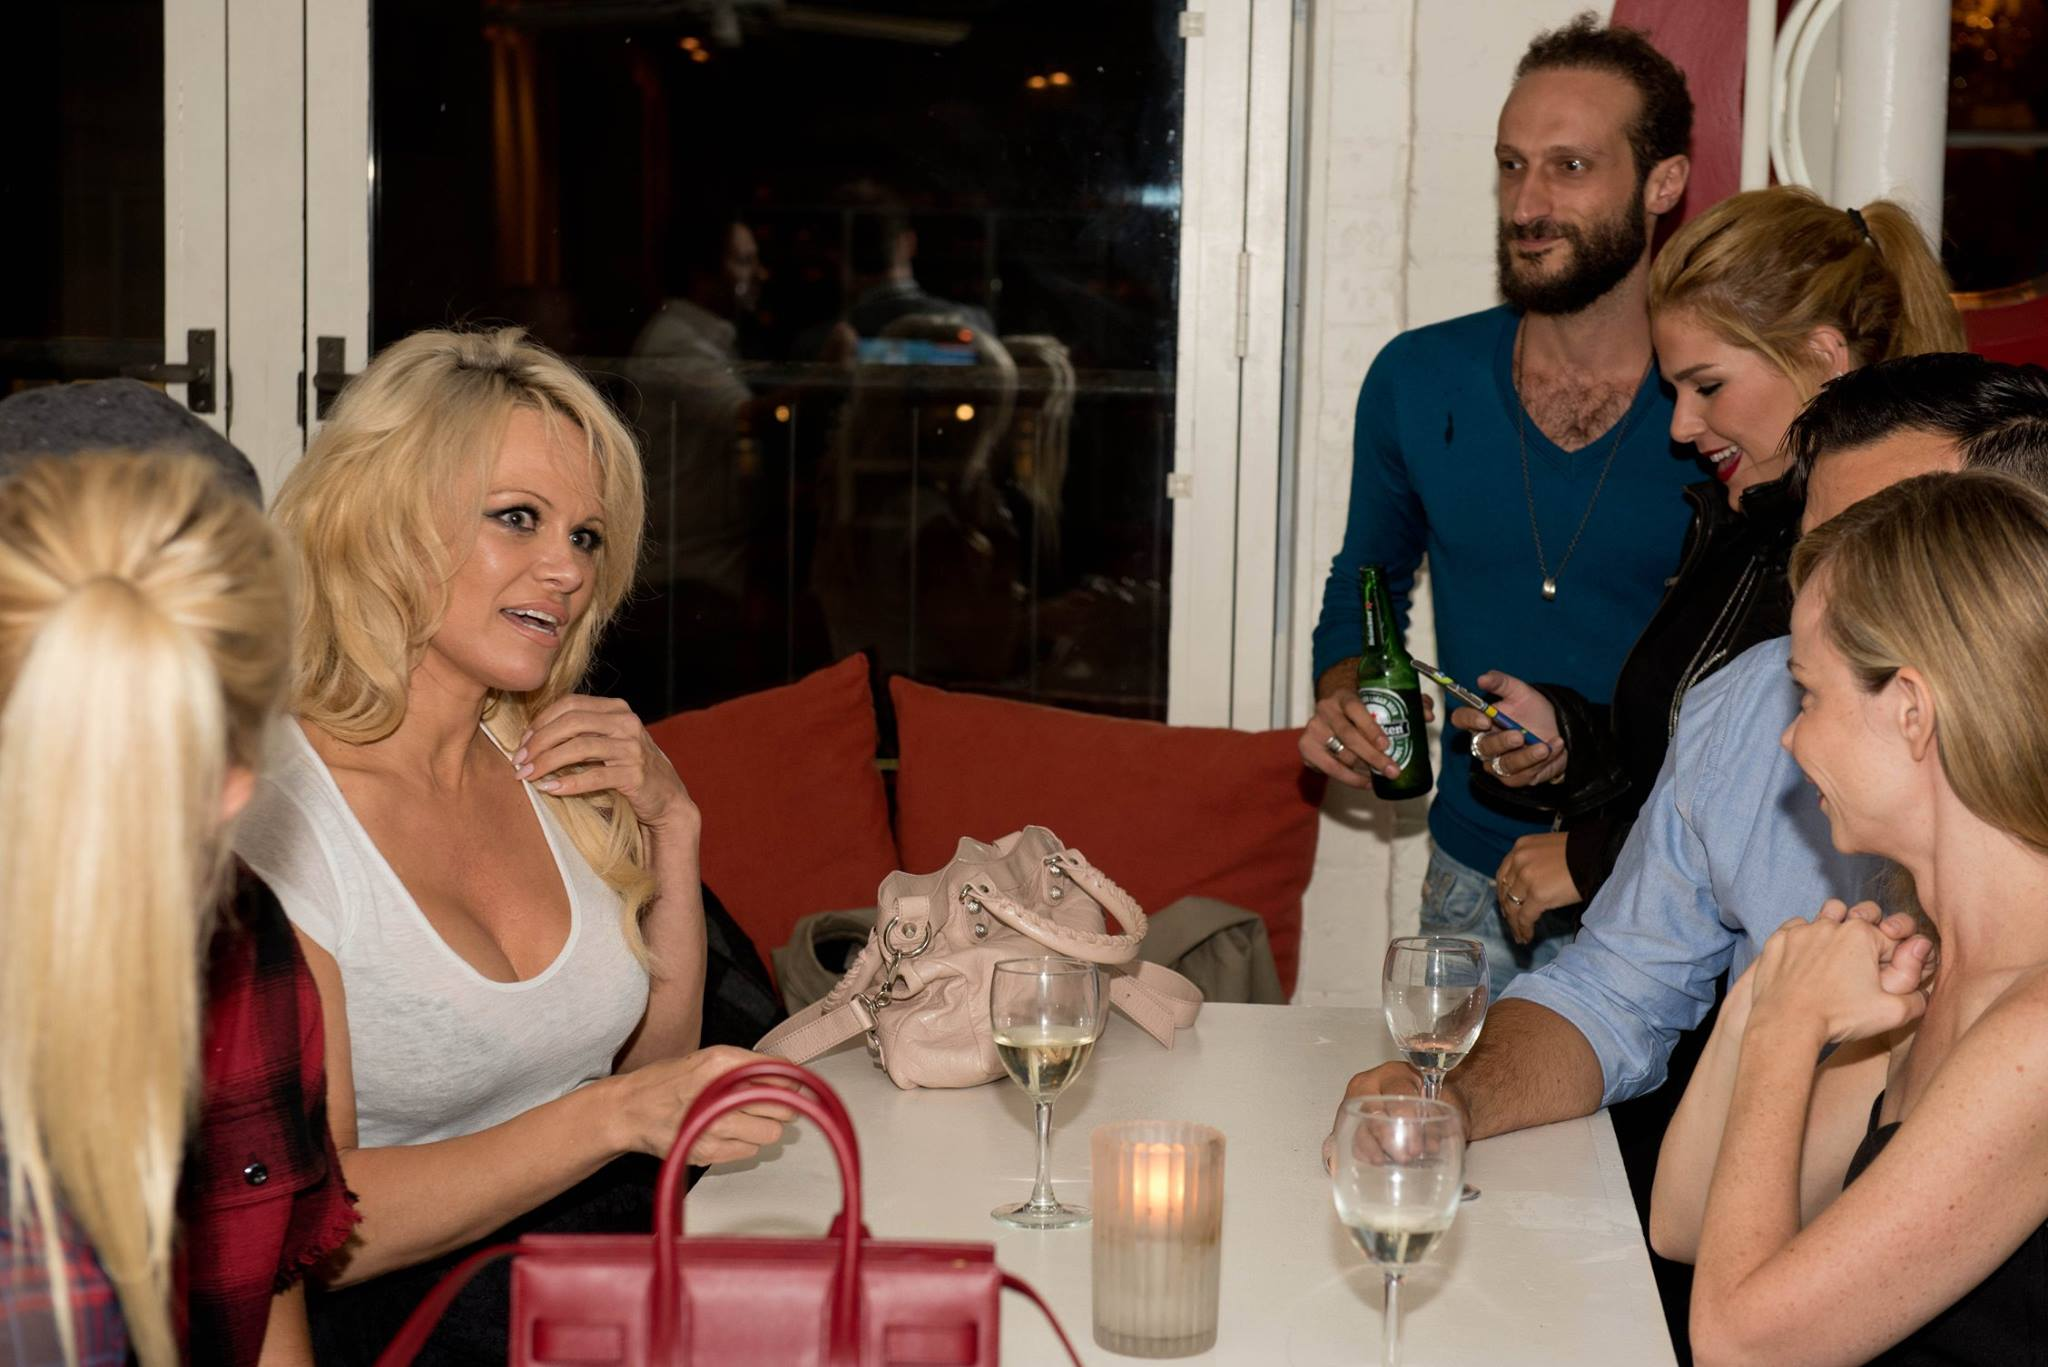 Event Venues Toronto - TIFF - Film Industry Party - Pamela Anderson in Toronto